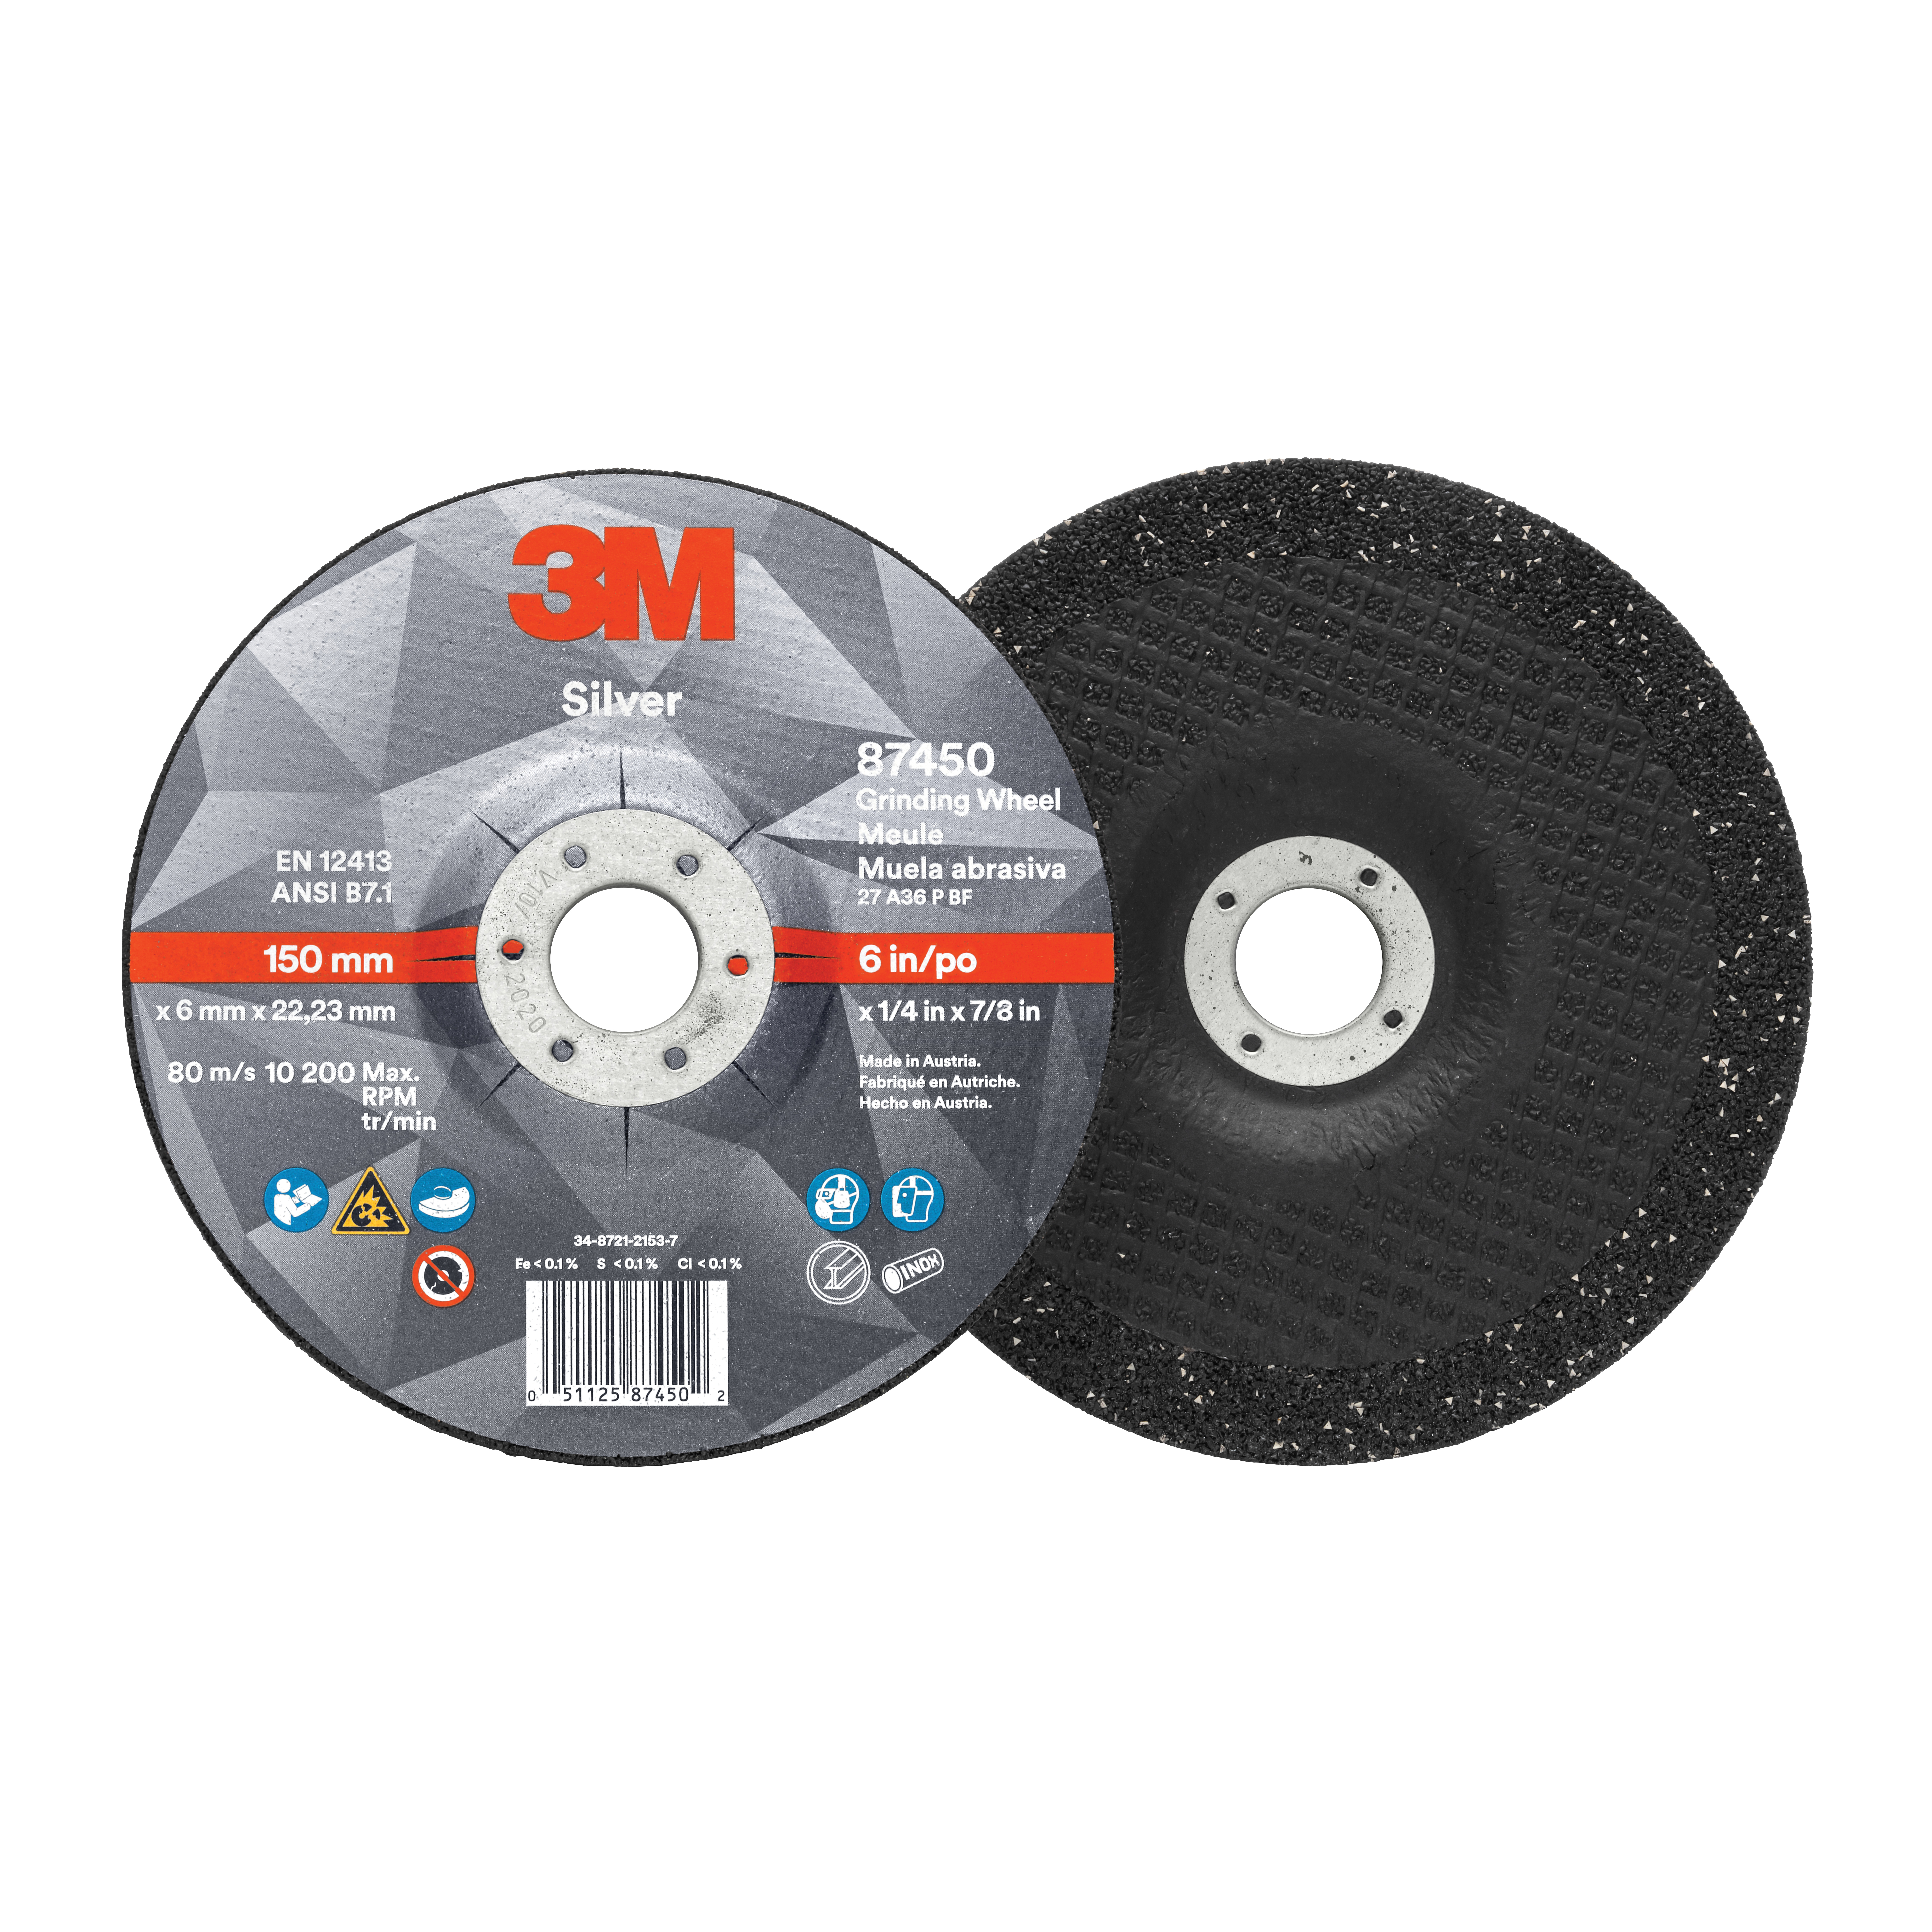 3M™ 051125-87450 Silver Depressed Center Wheel, 6 in Dia x 1/4 in THK, 7/8 in Center Hole, 36 Grit, Ceramic Grain Abrasive